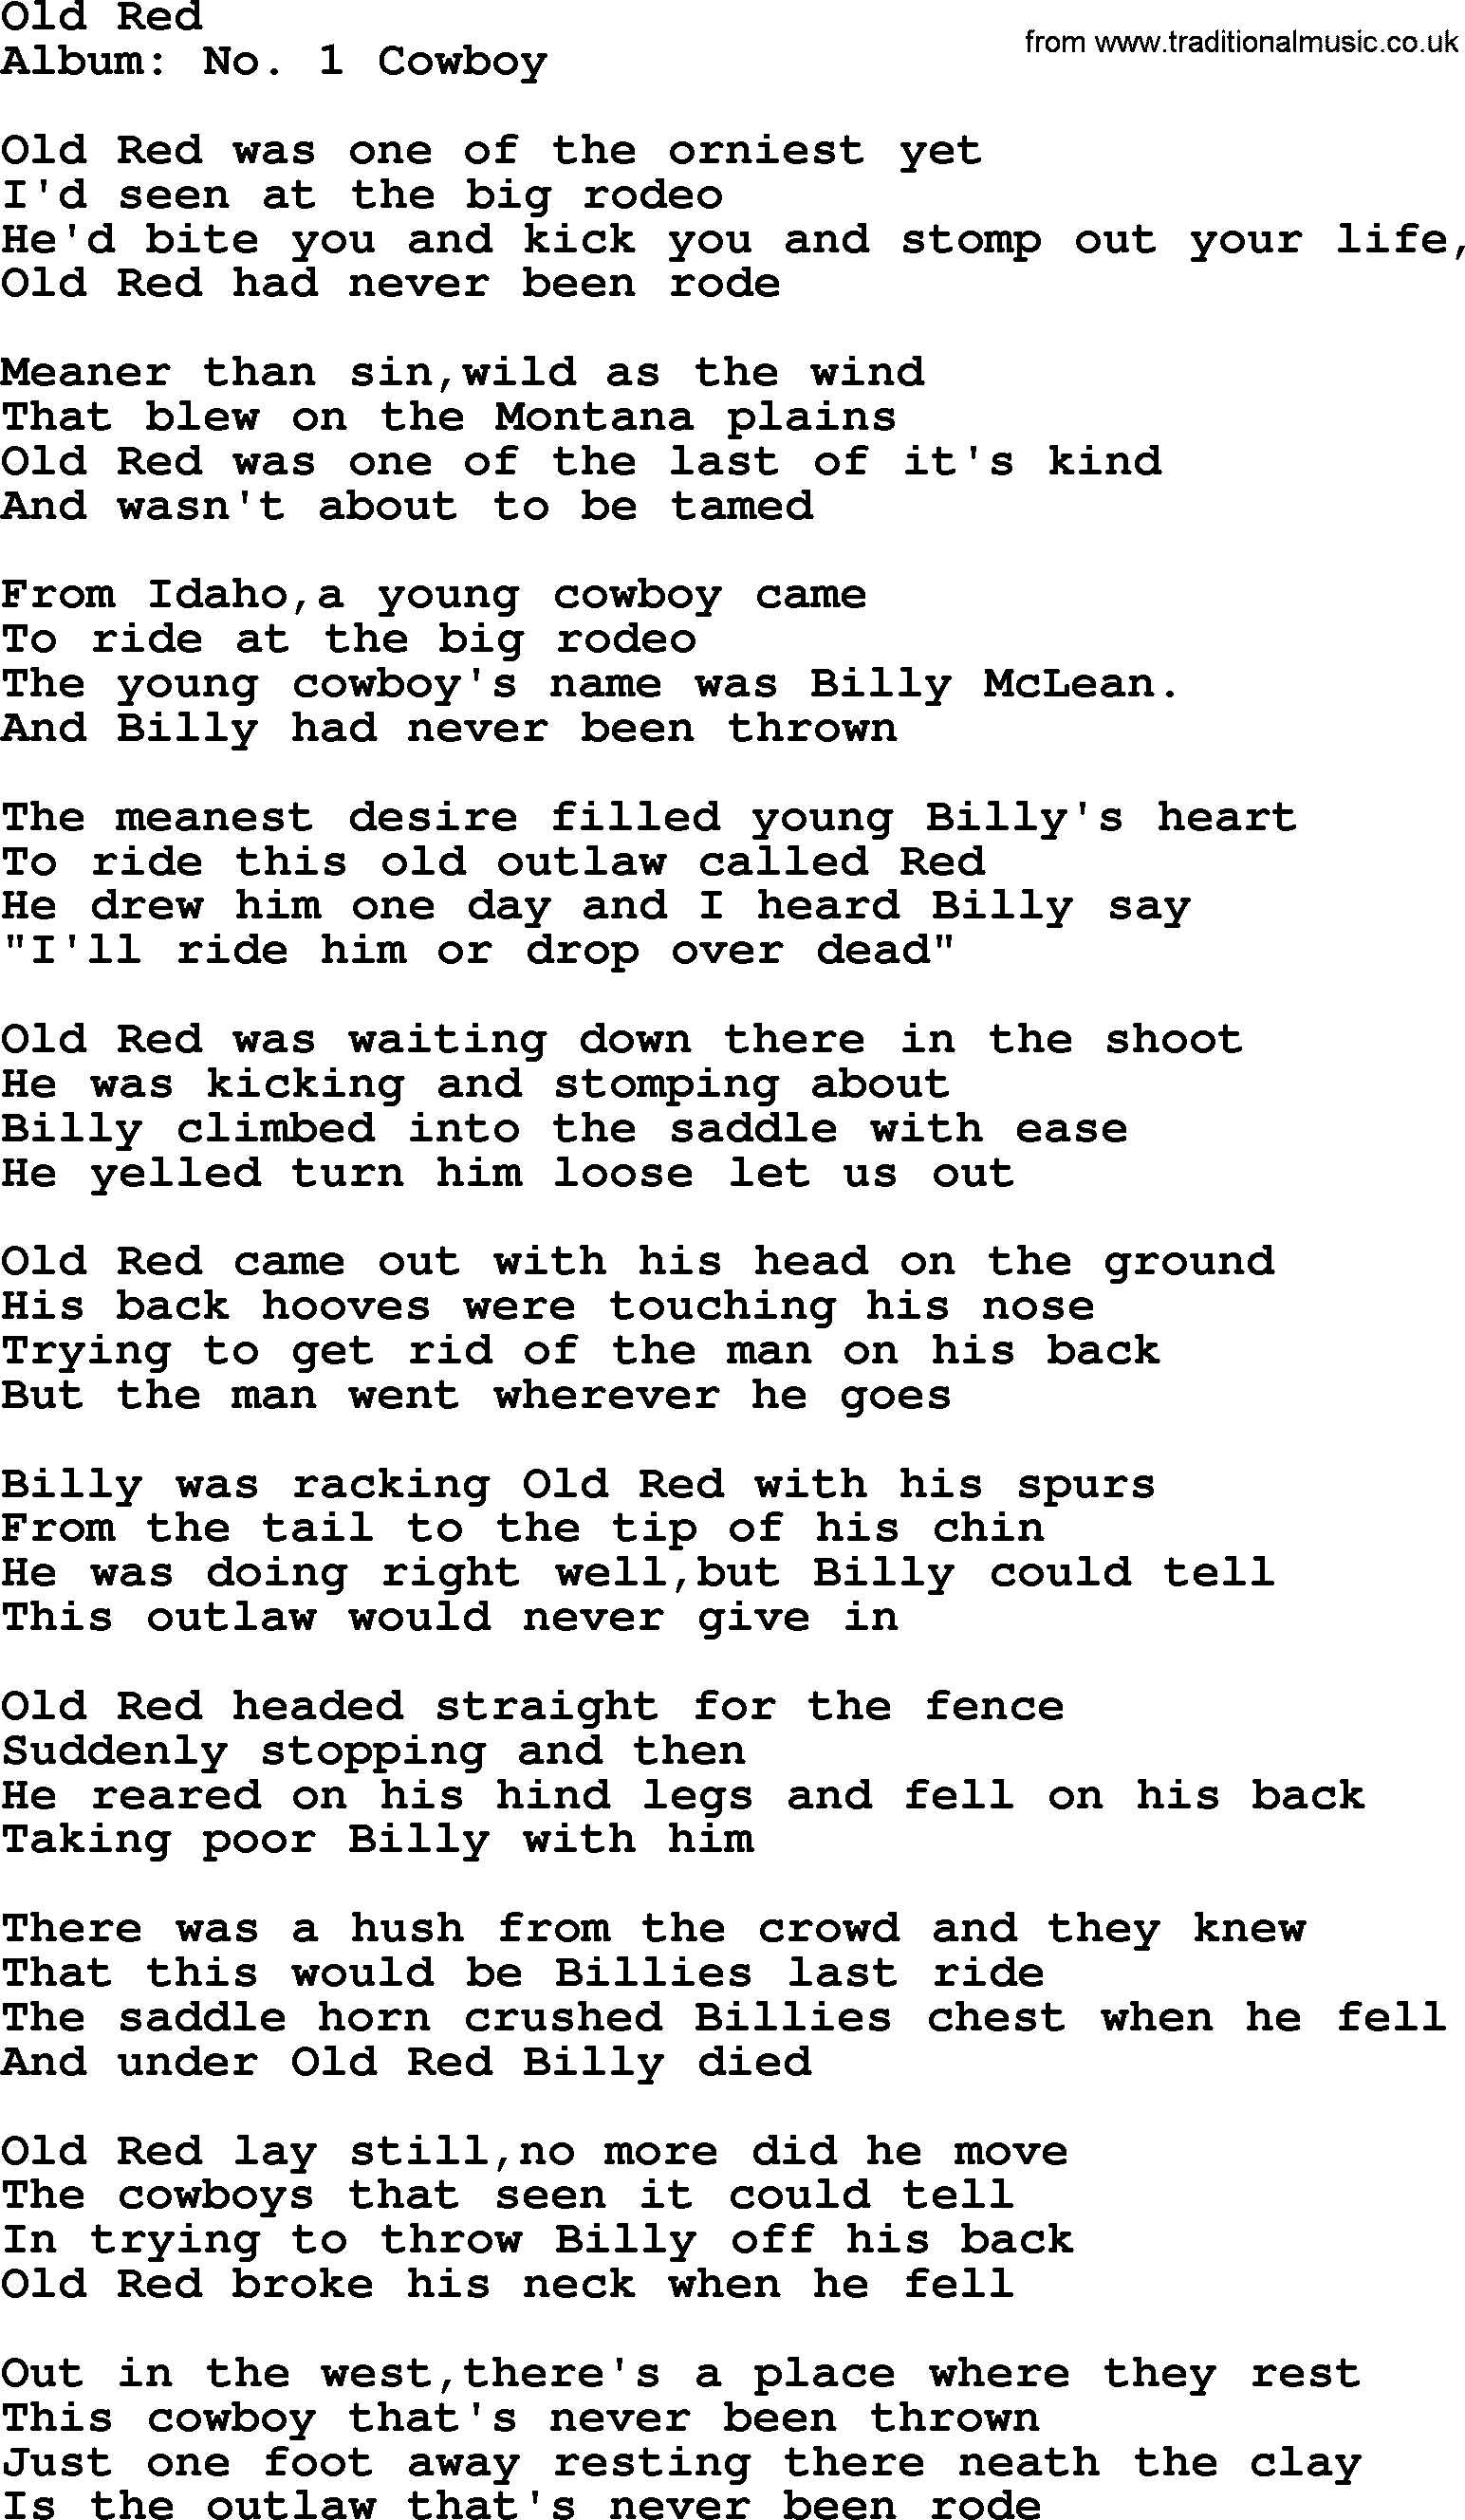 Old Red, by Marty Robbins   lyrics